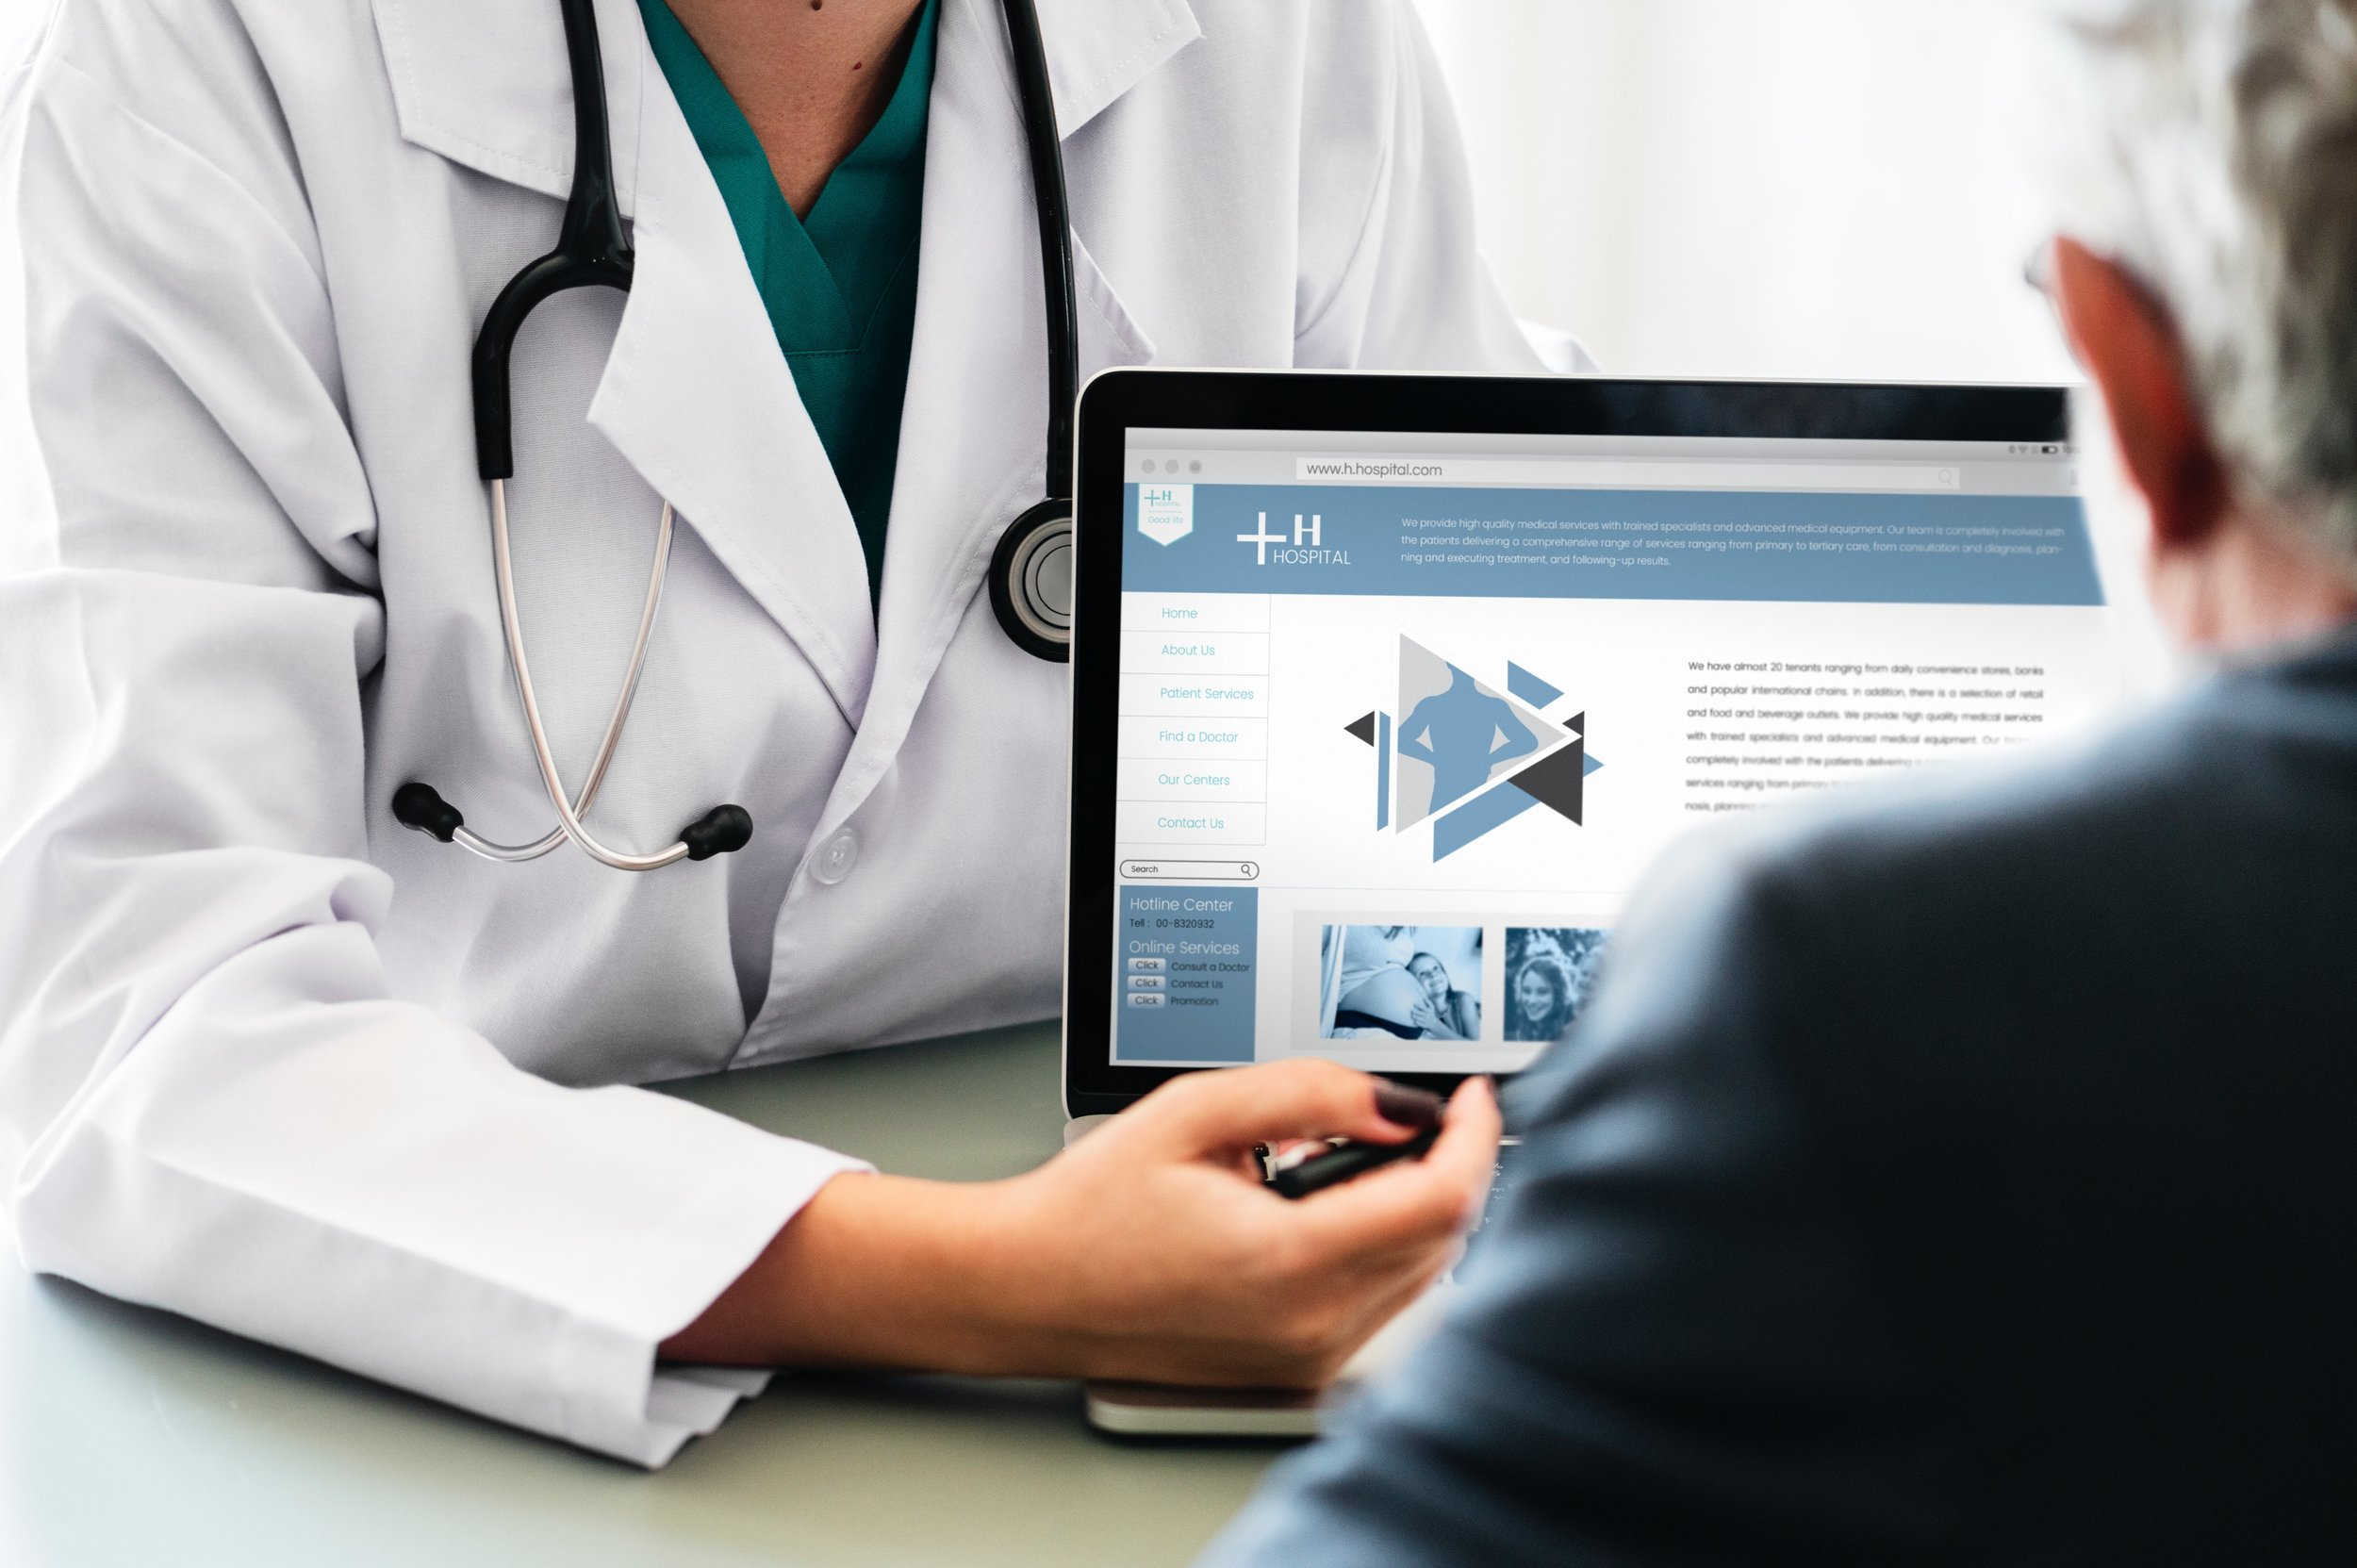 Patient engagement is an increasingly important factor in value-based care.